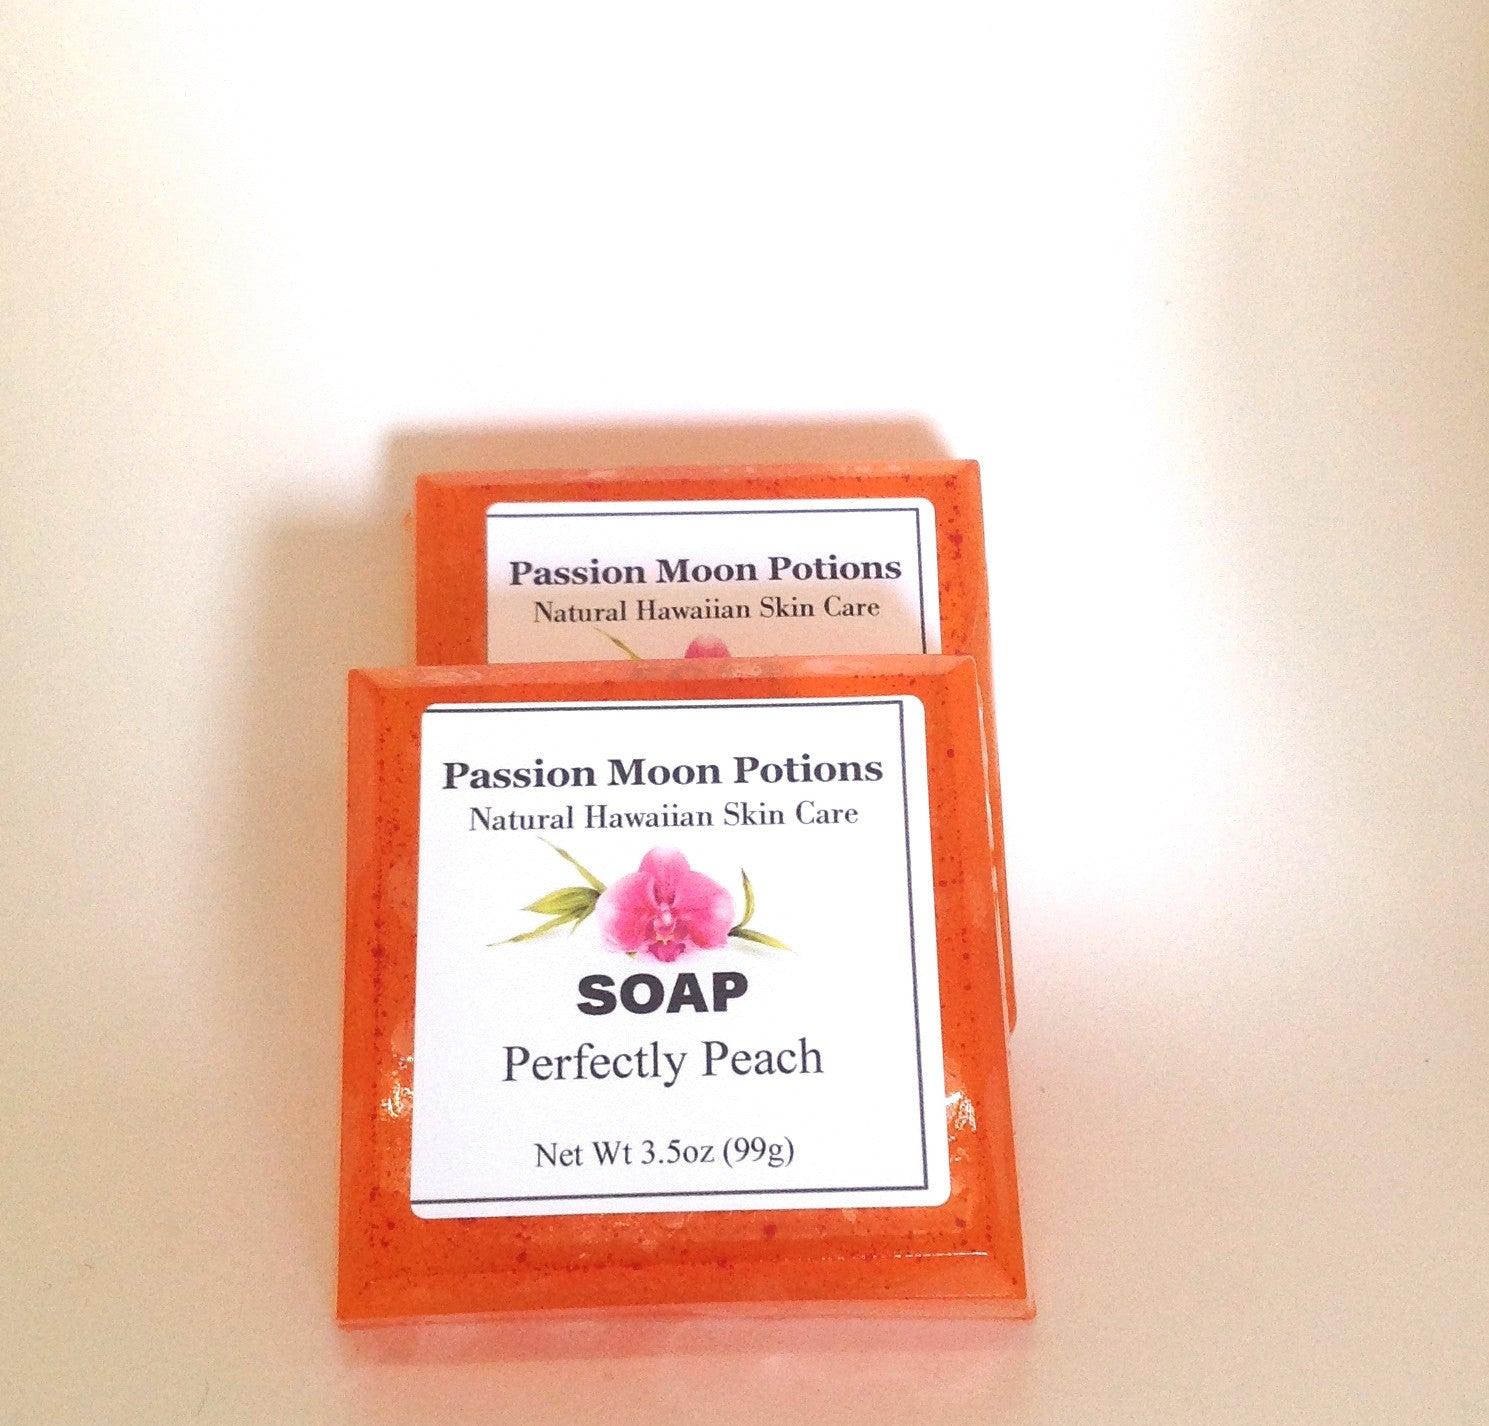 Perfectly Peach Soap - Passion Moon Potions - 2